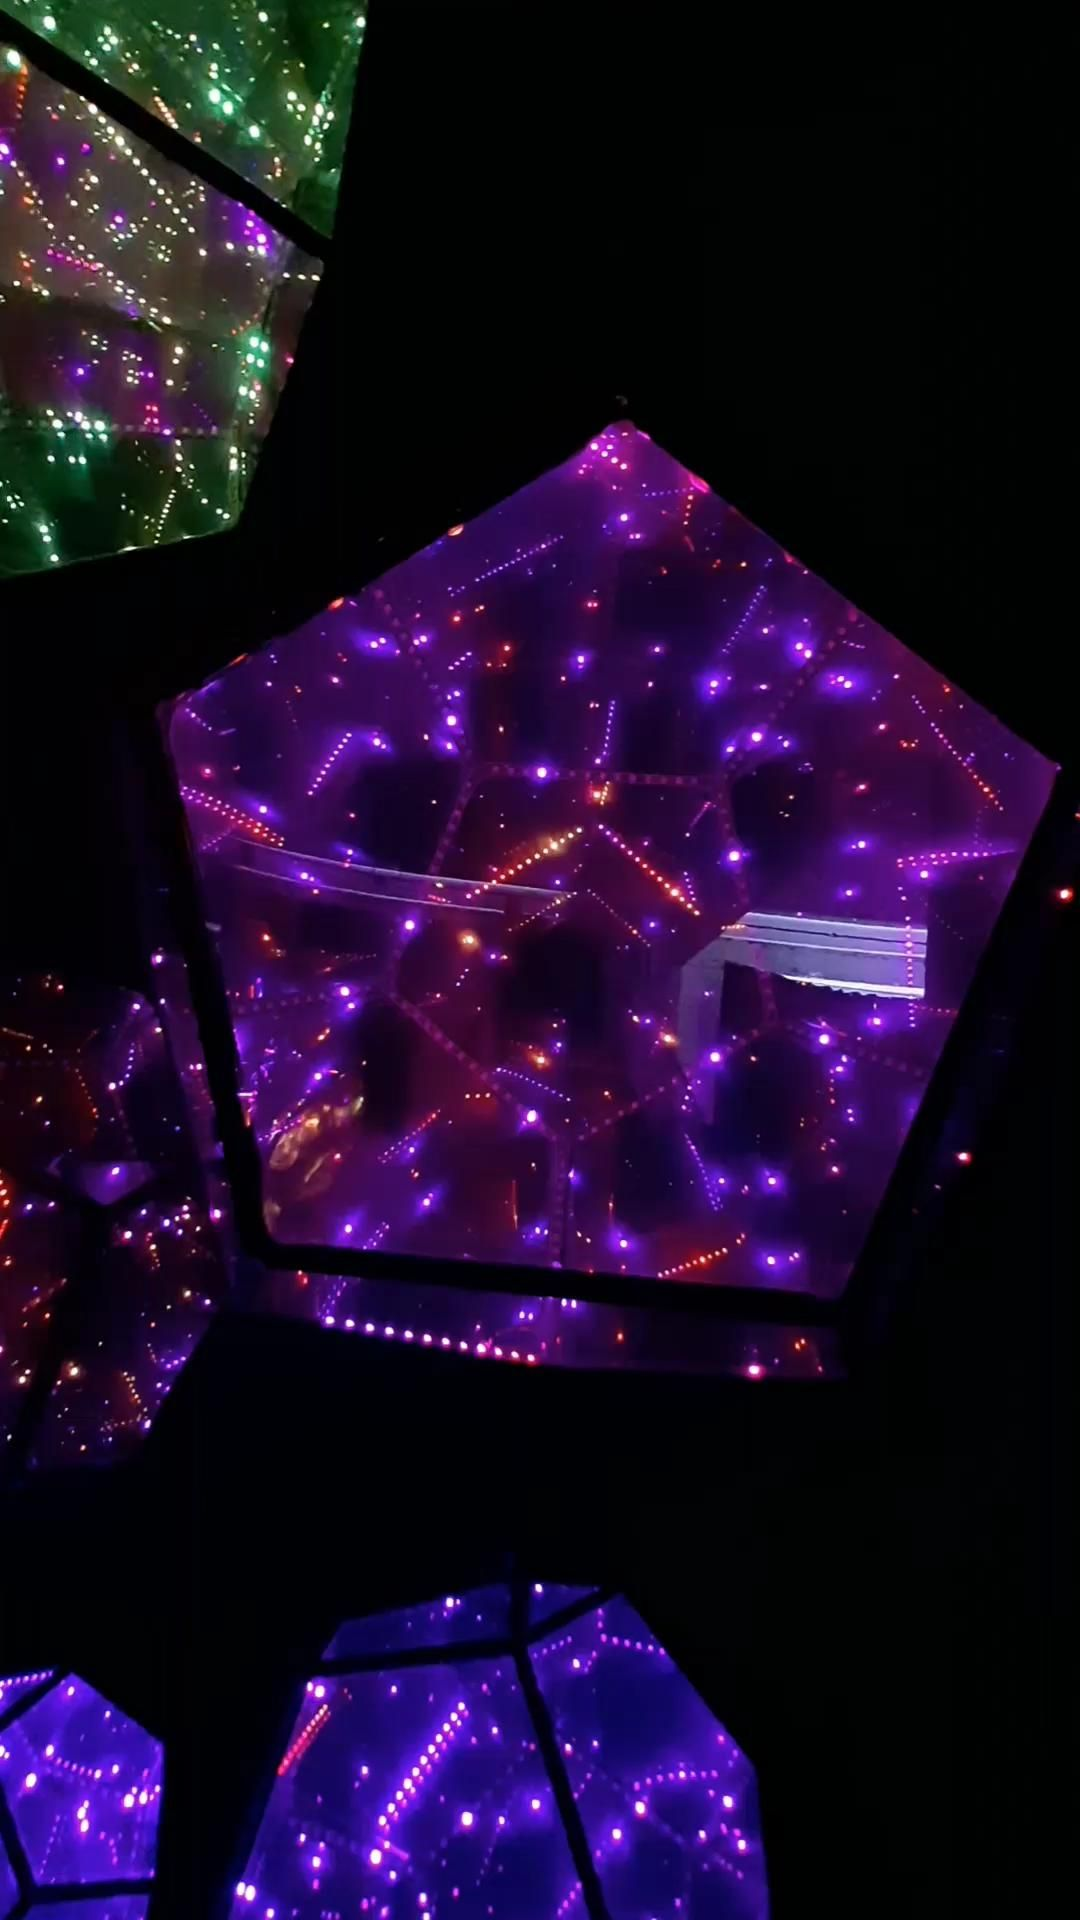 light installation | dodecahedron led project | diy infinity dodecahedron | deeplight dodecahedron